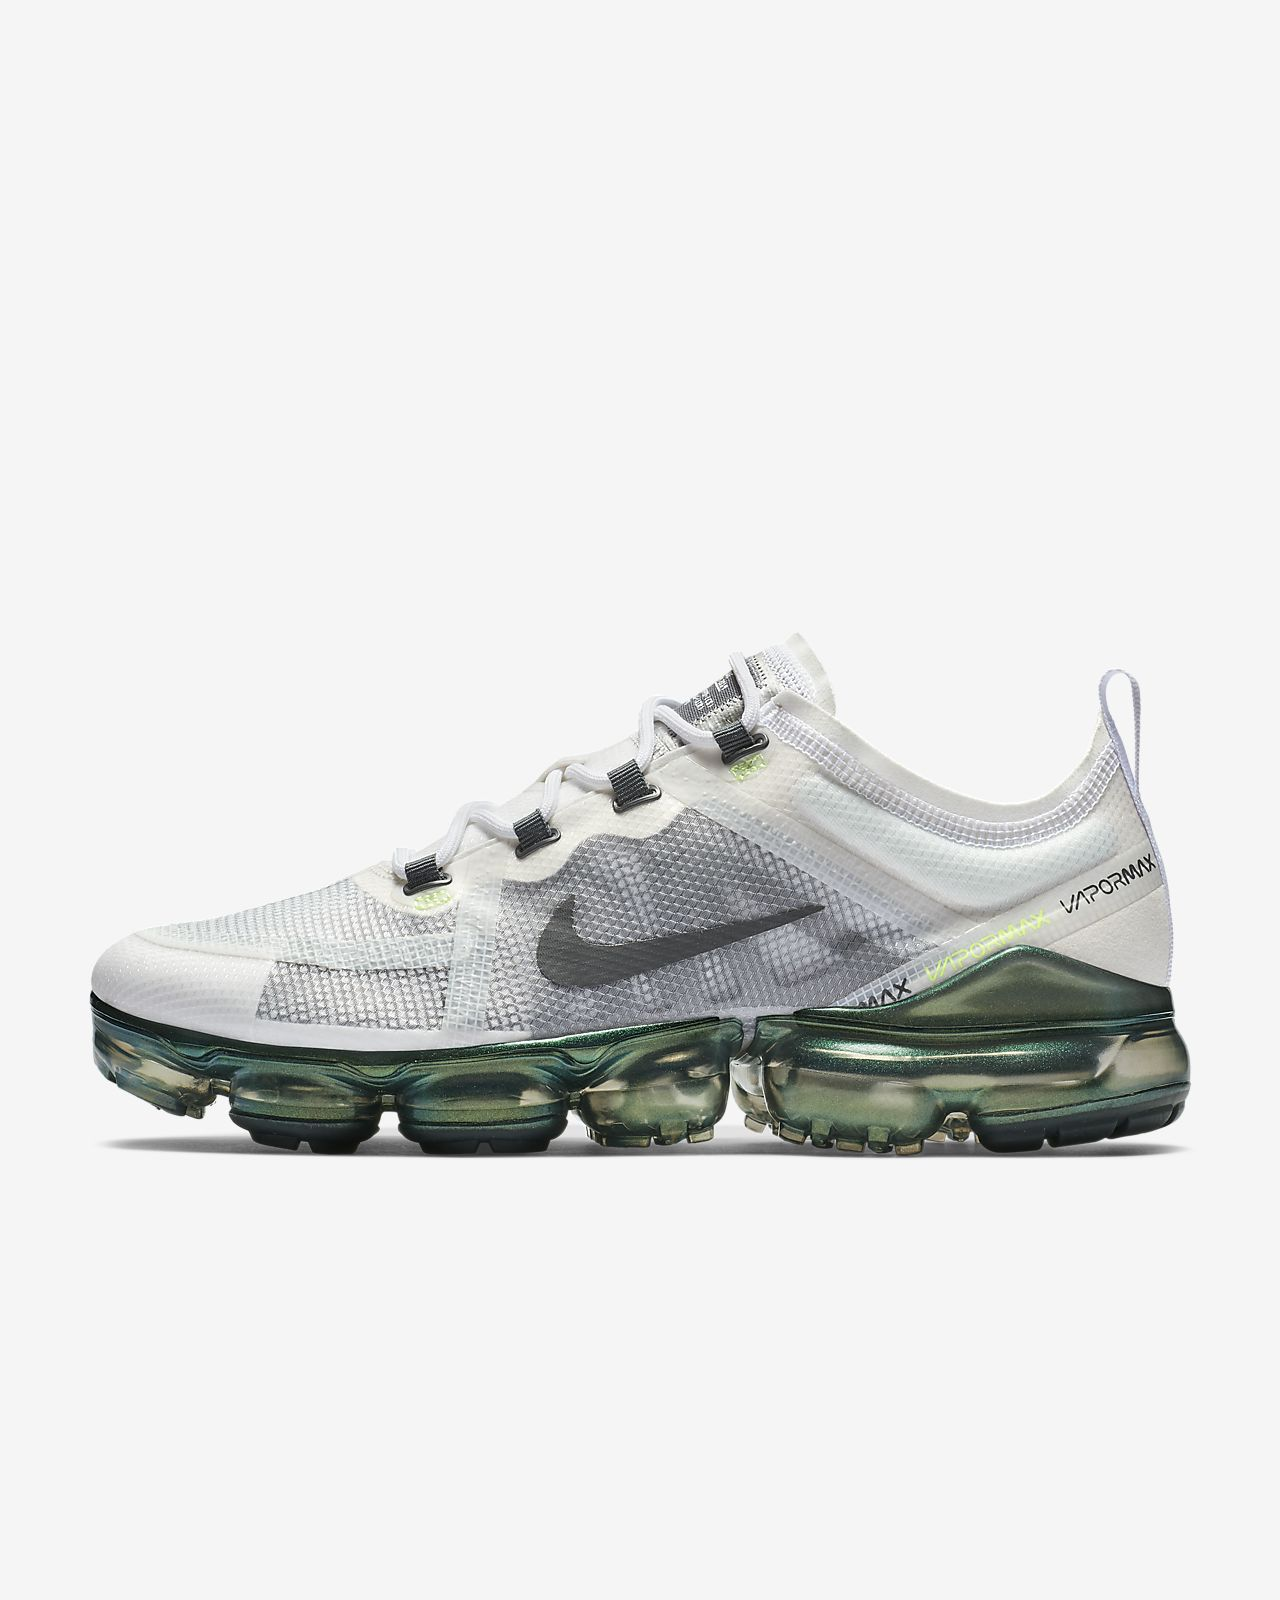 Nike Air VaporMax 2019 Premium Shoe